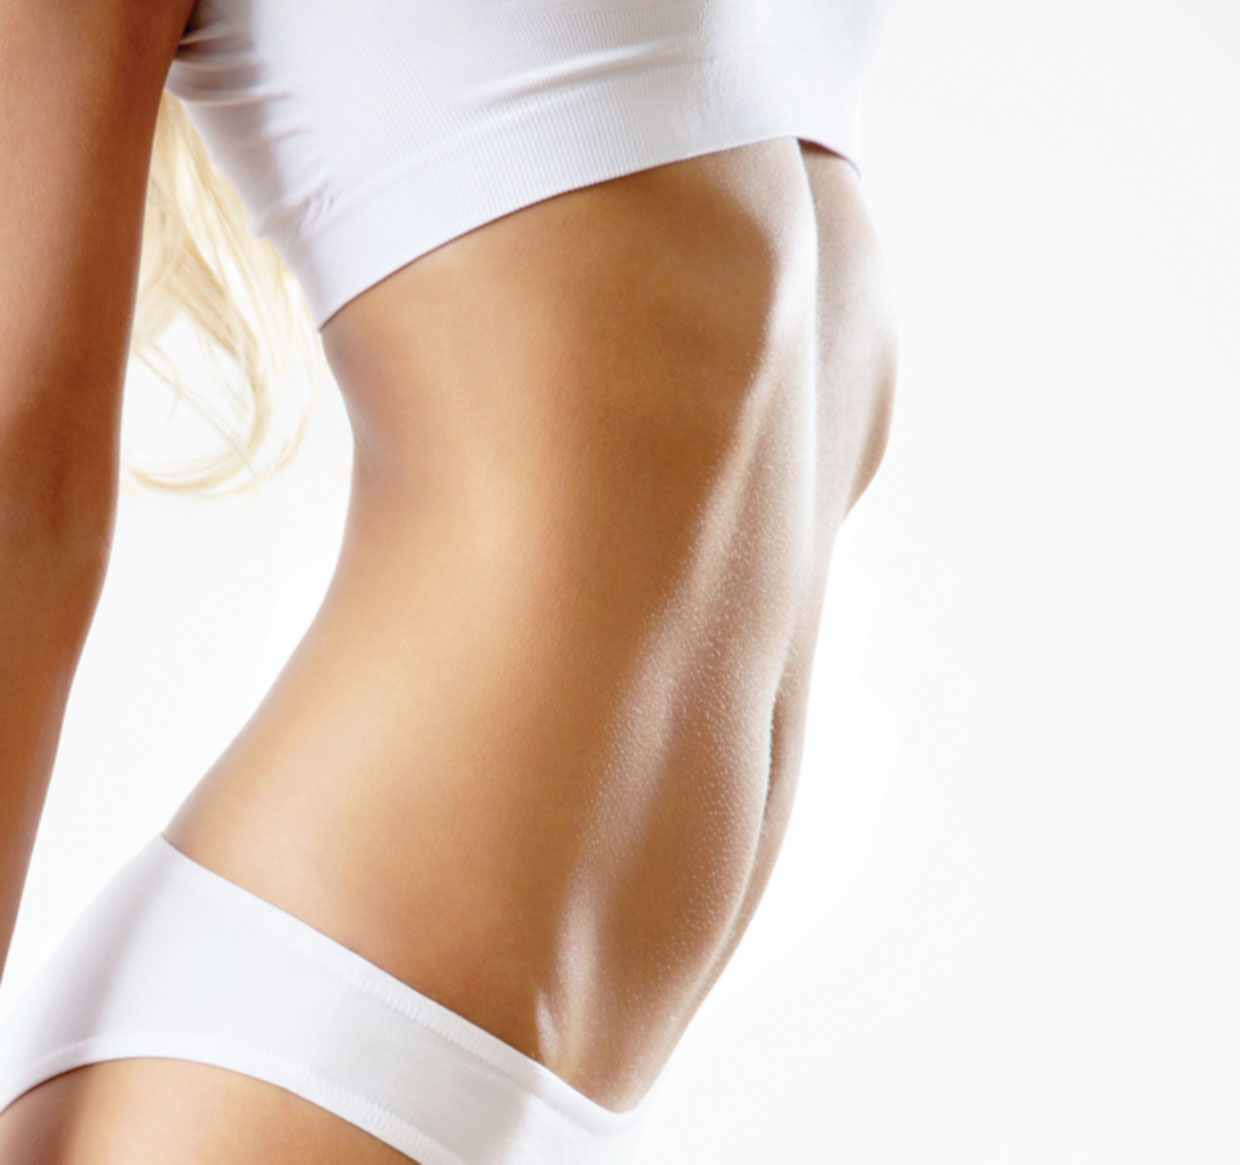 Gain More Confidence With a Tummy Tuck